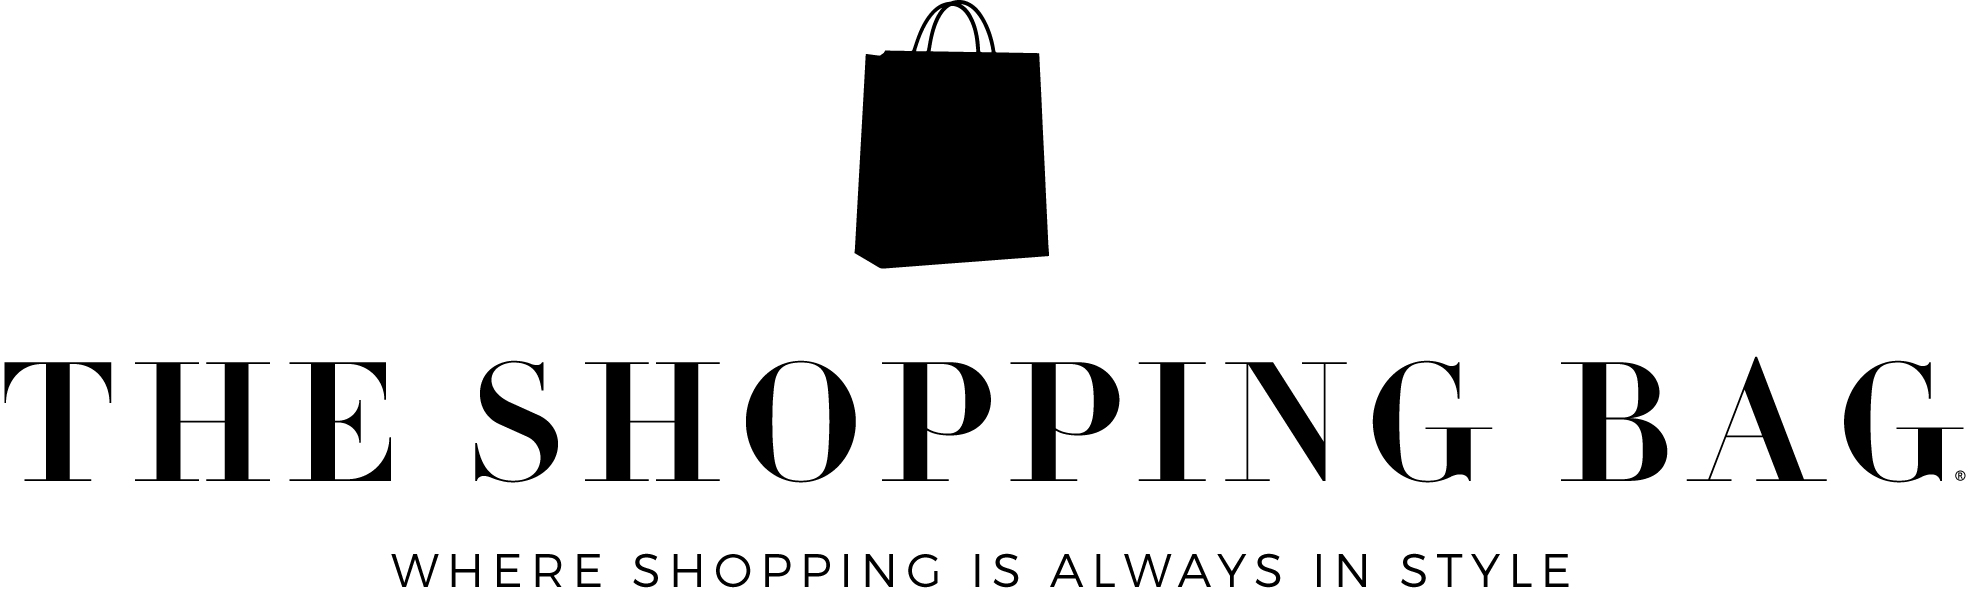 24% Off The Shopping Bag Promo Codes   Top 2019 Coupons  PromoCodeWatch e0a99affb5